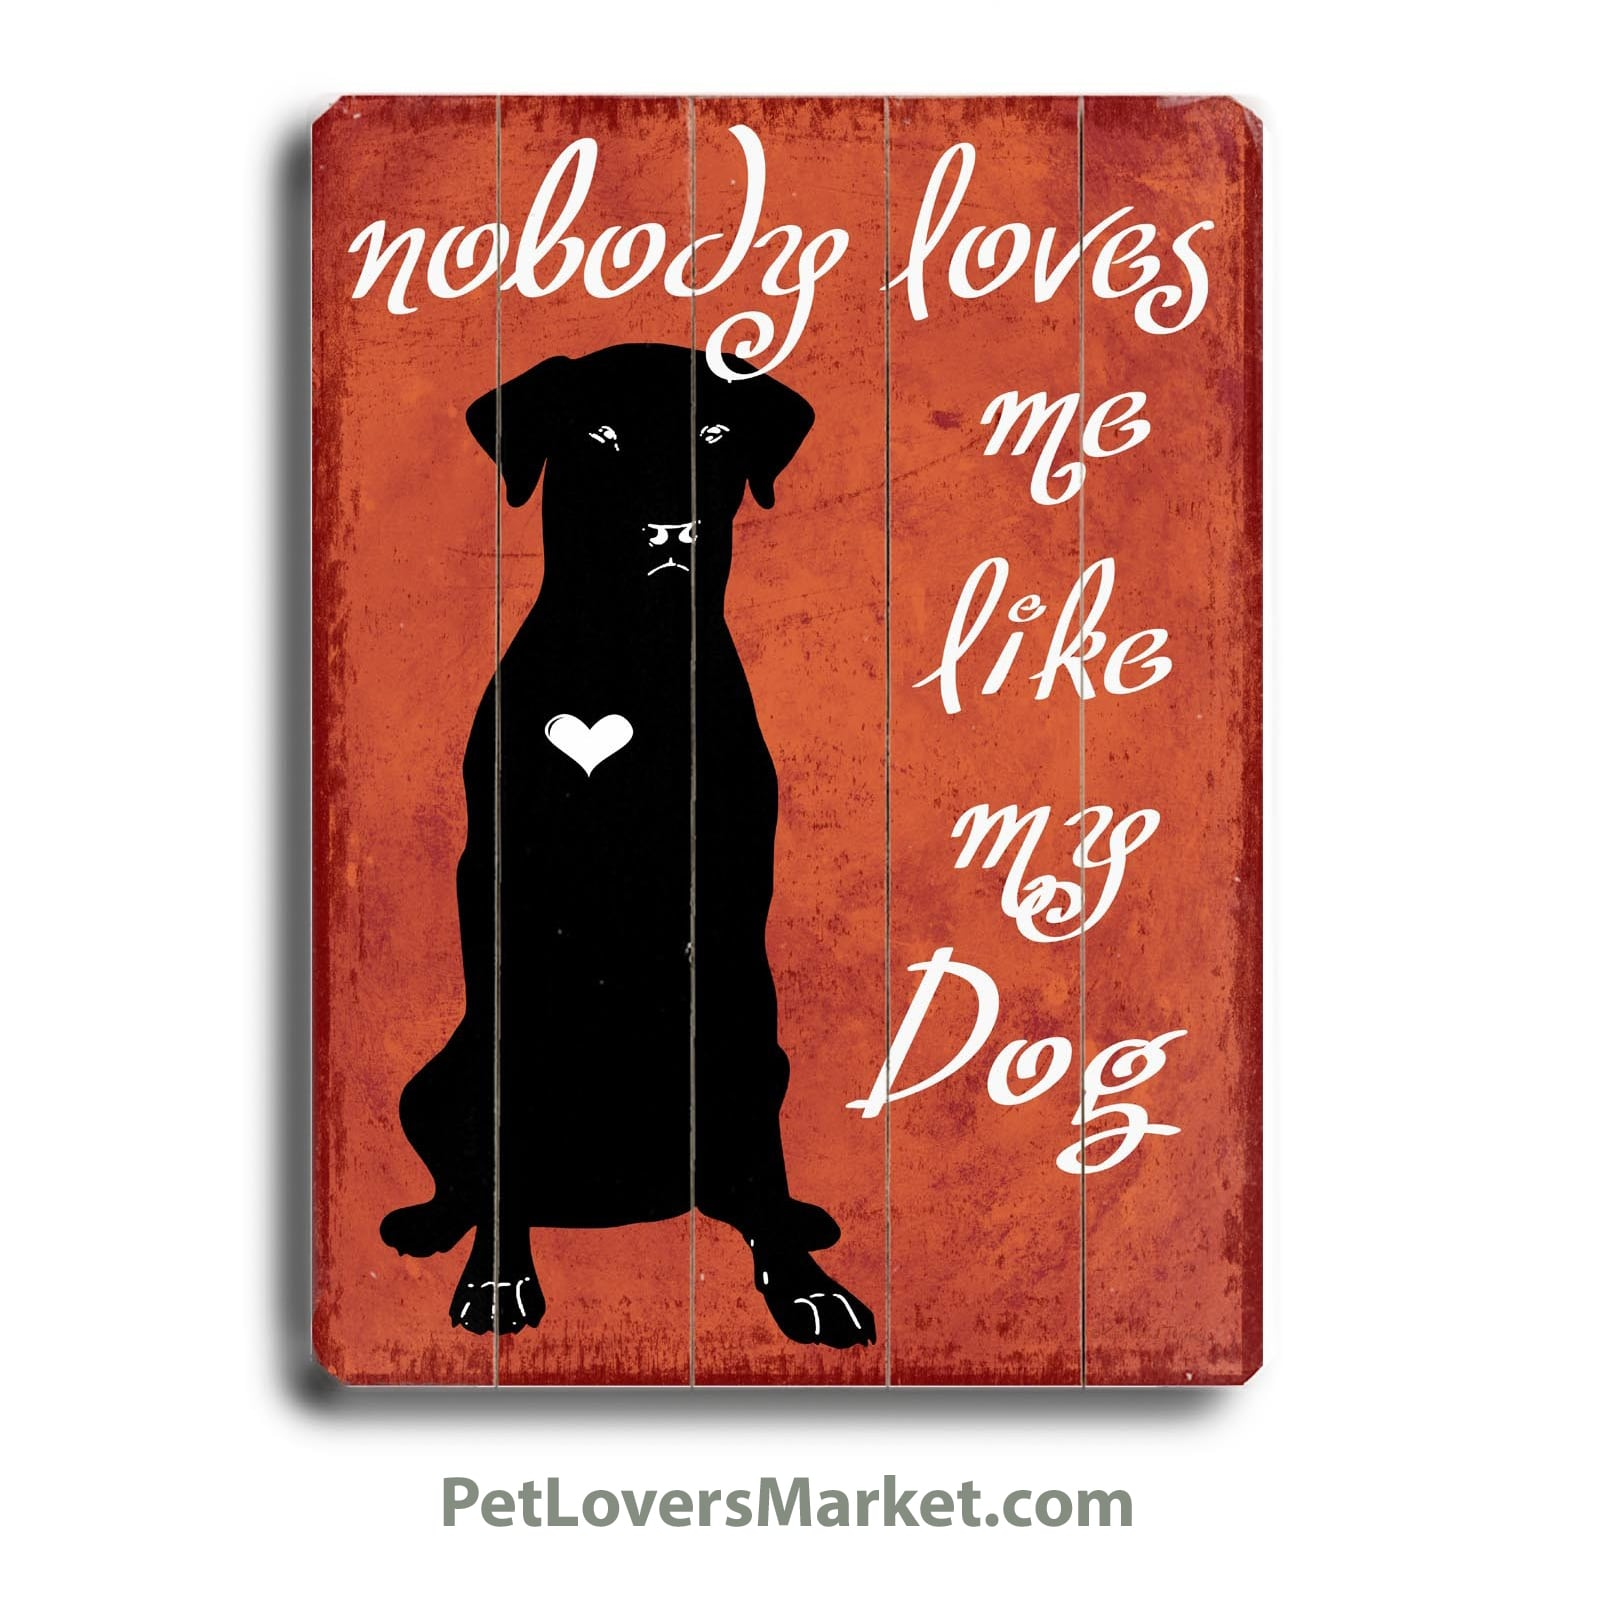 My Dog Loves Me Quotes: Pet Lovers Market